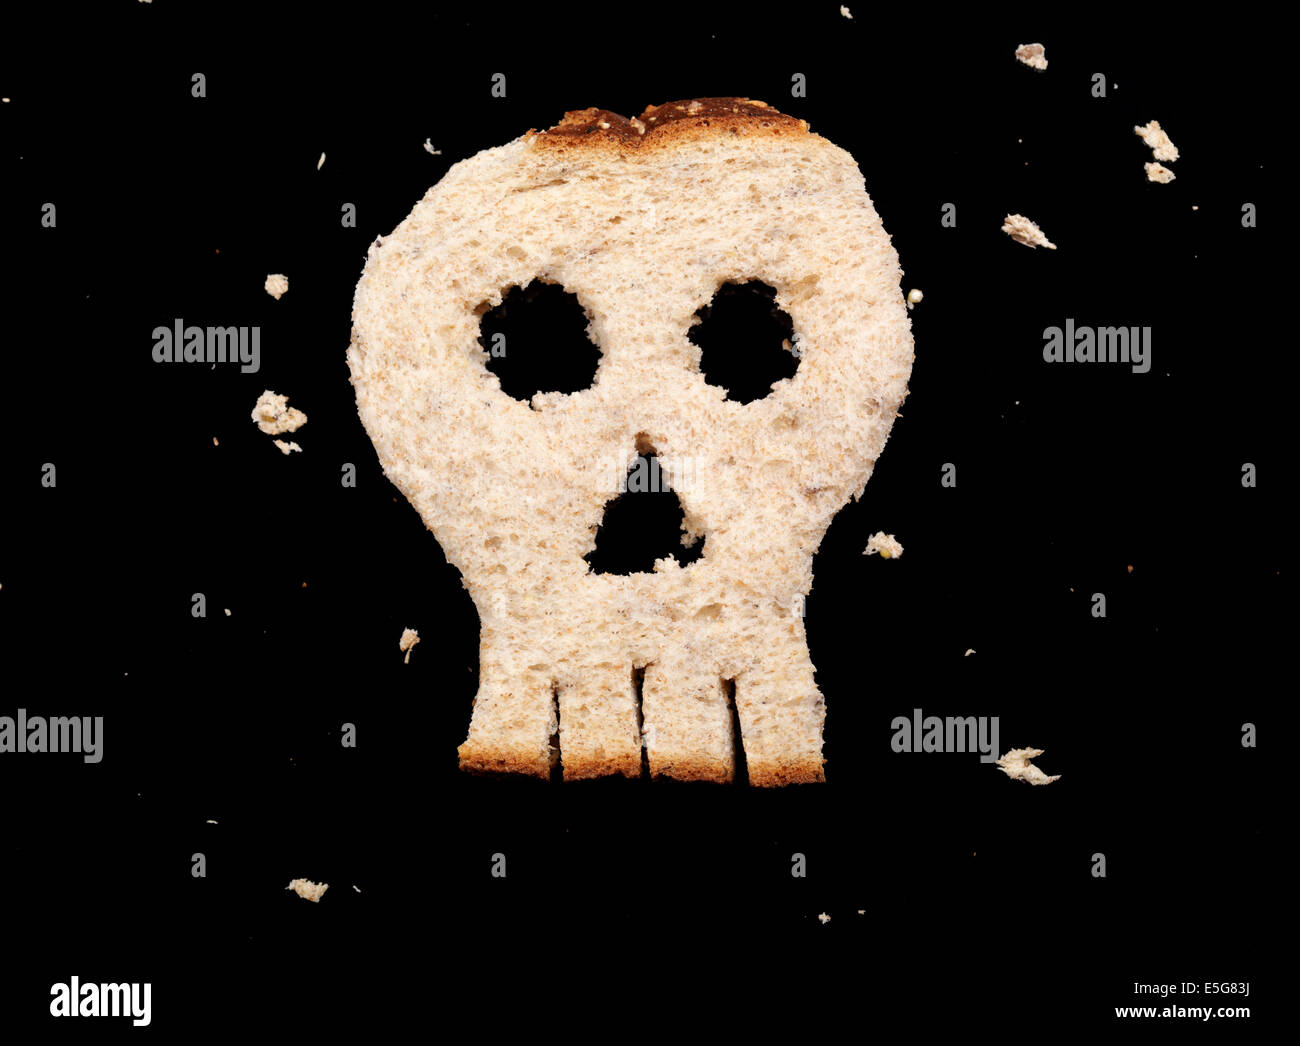 Skull made of bread isolated on black background - Stock Image